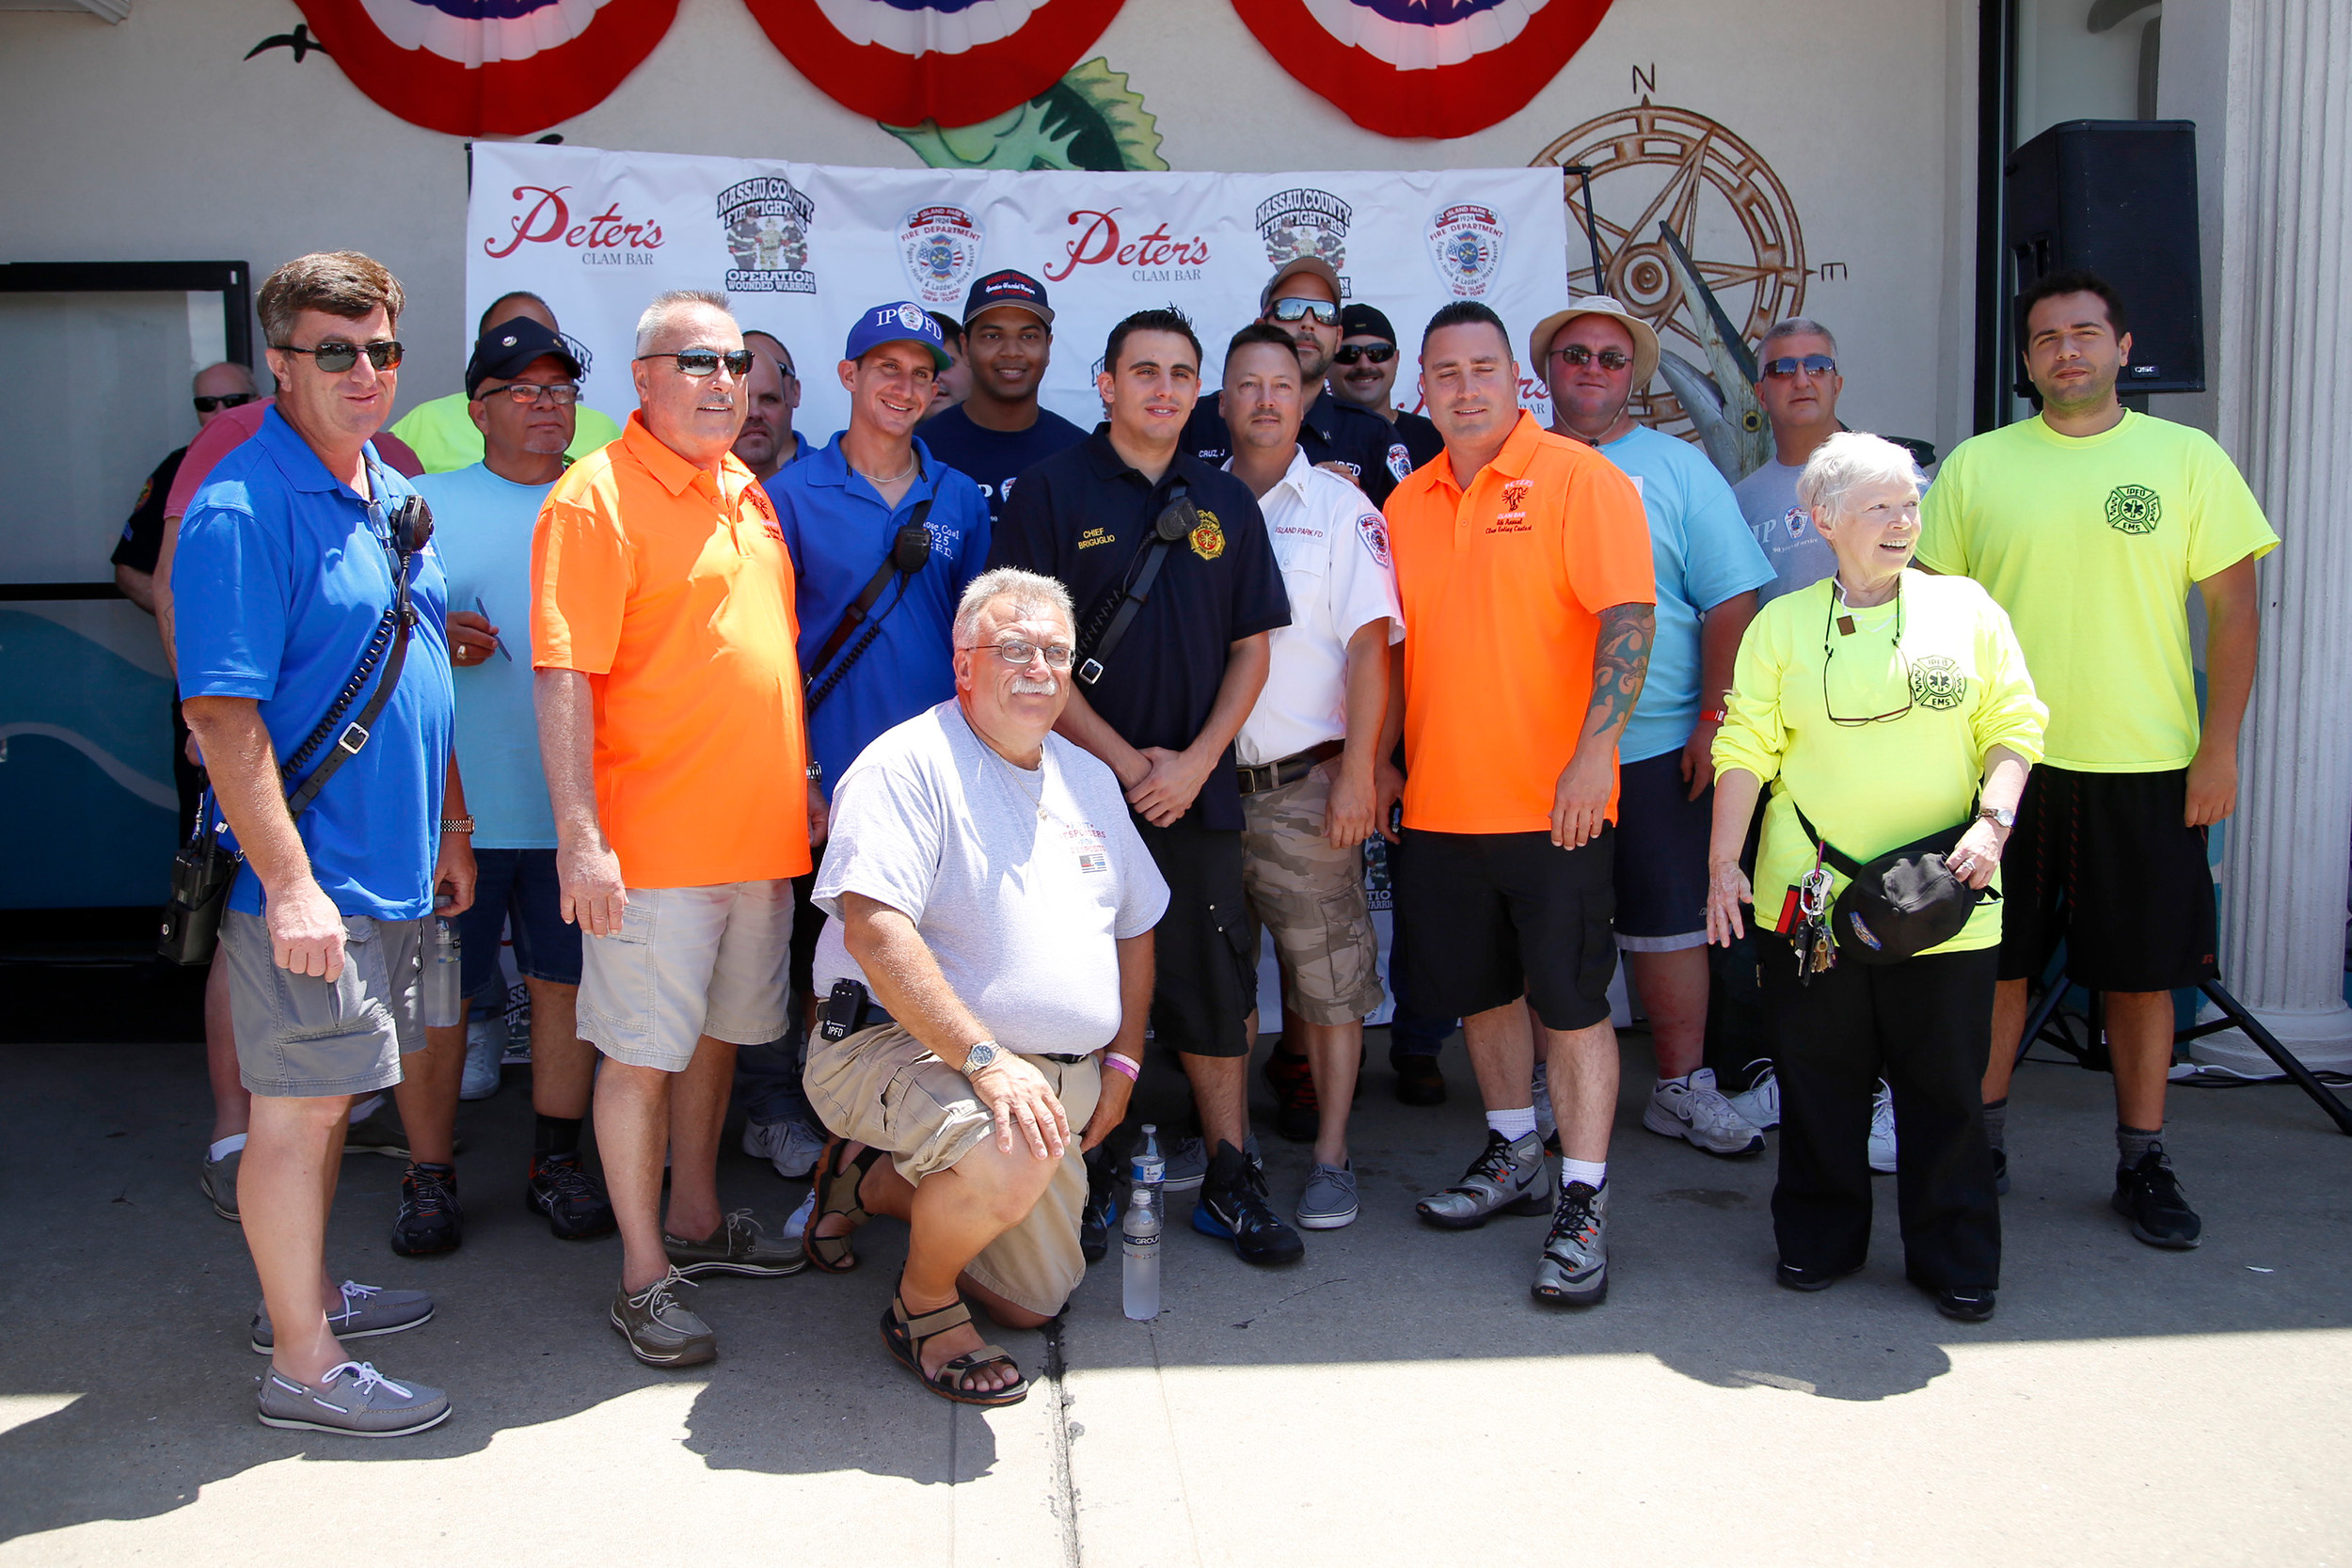 Members of the Island Park Fire Department stood outside Peter's Clam Bar for its Annual Long Island Clam Eating Contest.